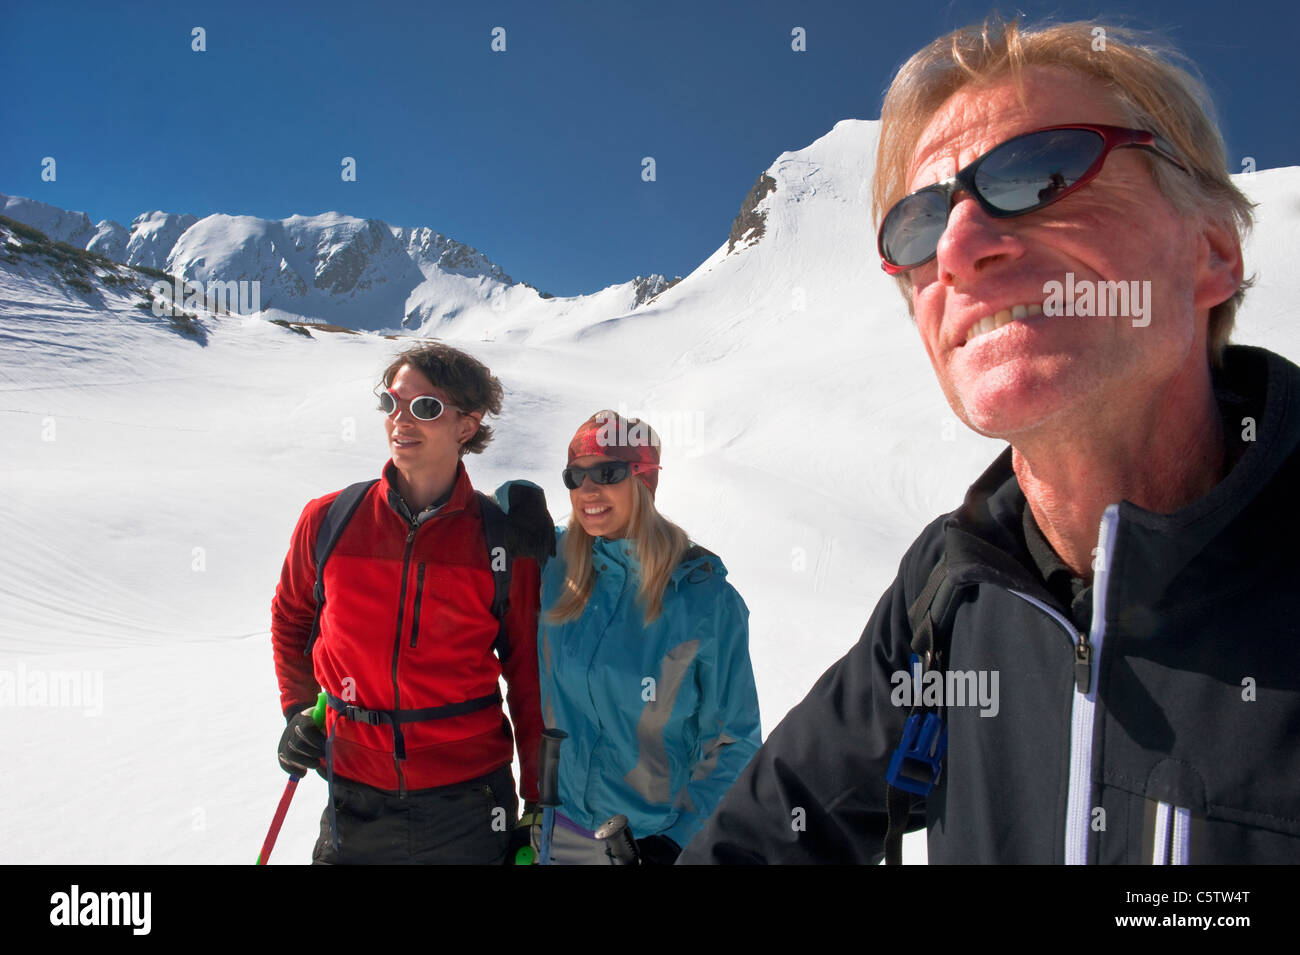 Austria, Salzburger Land, Altenmarkt, Zauchensee, Three persons in snowy landscape, man holding ski pole, portrait - Stock Image